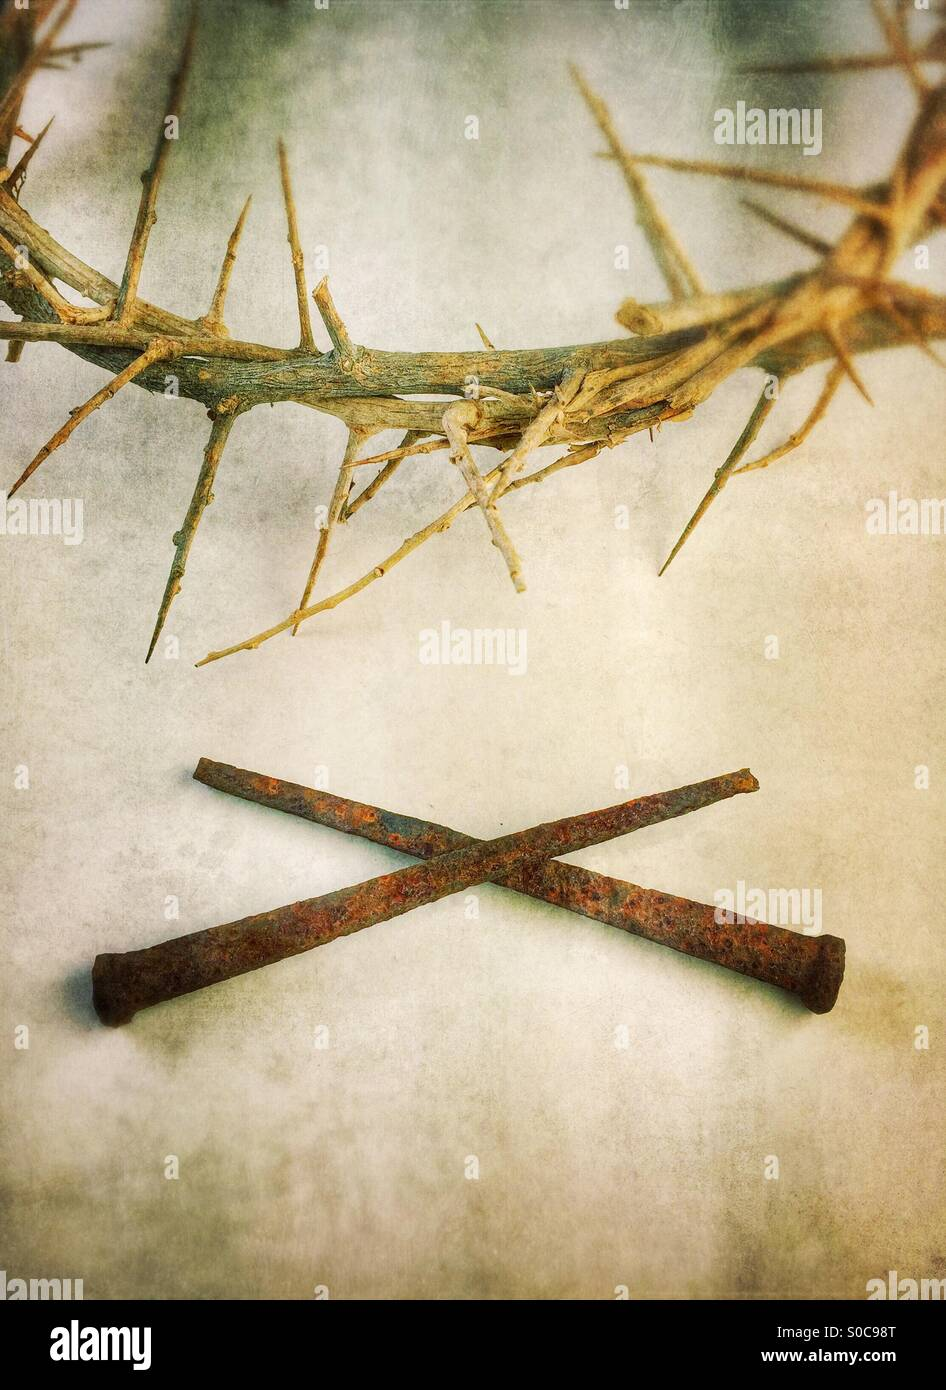 Crown of thorns with nails. - Stock Image